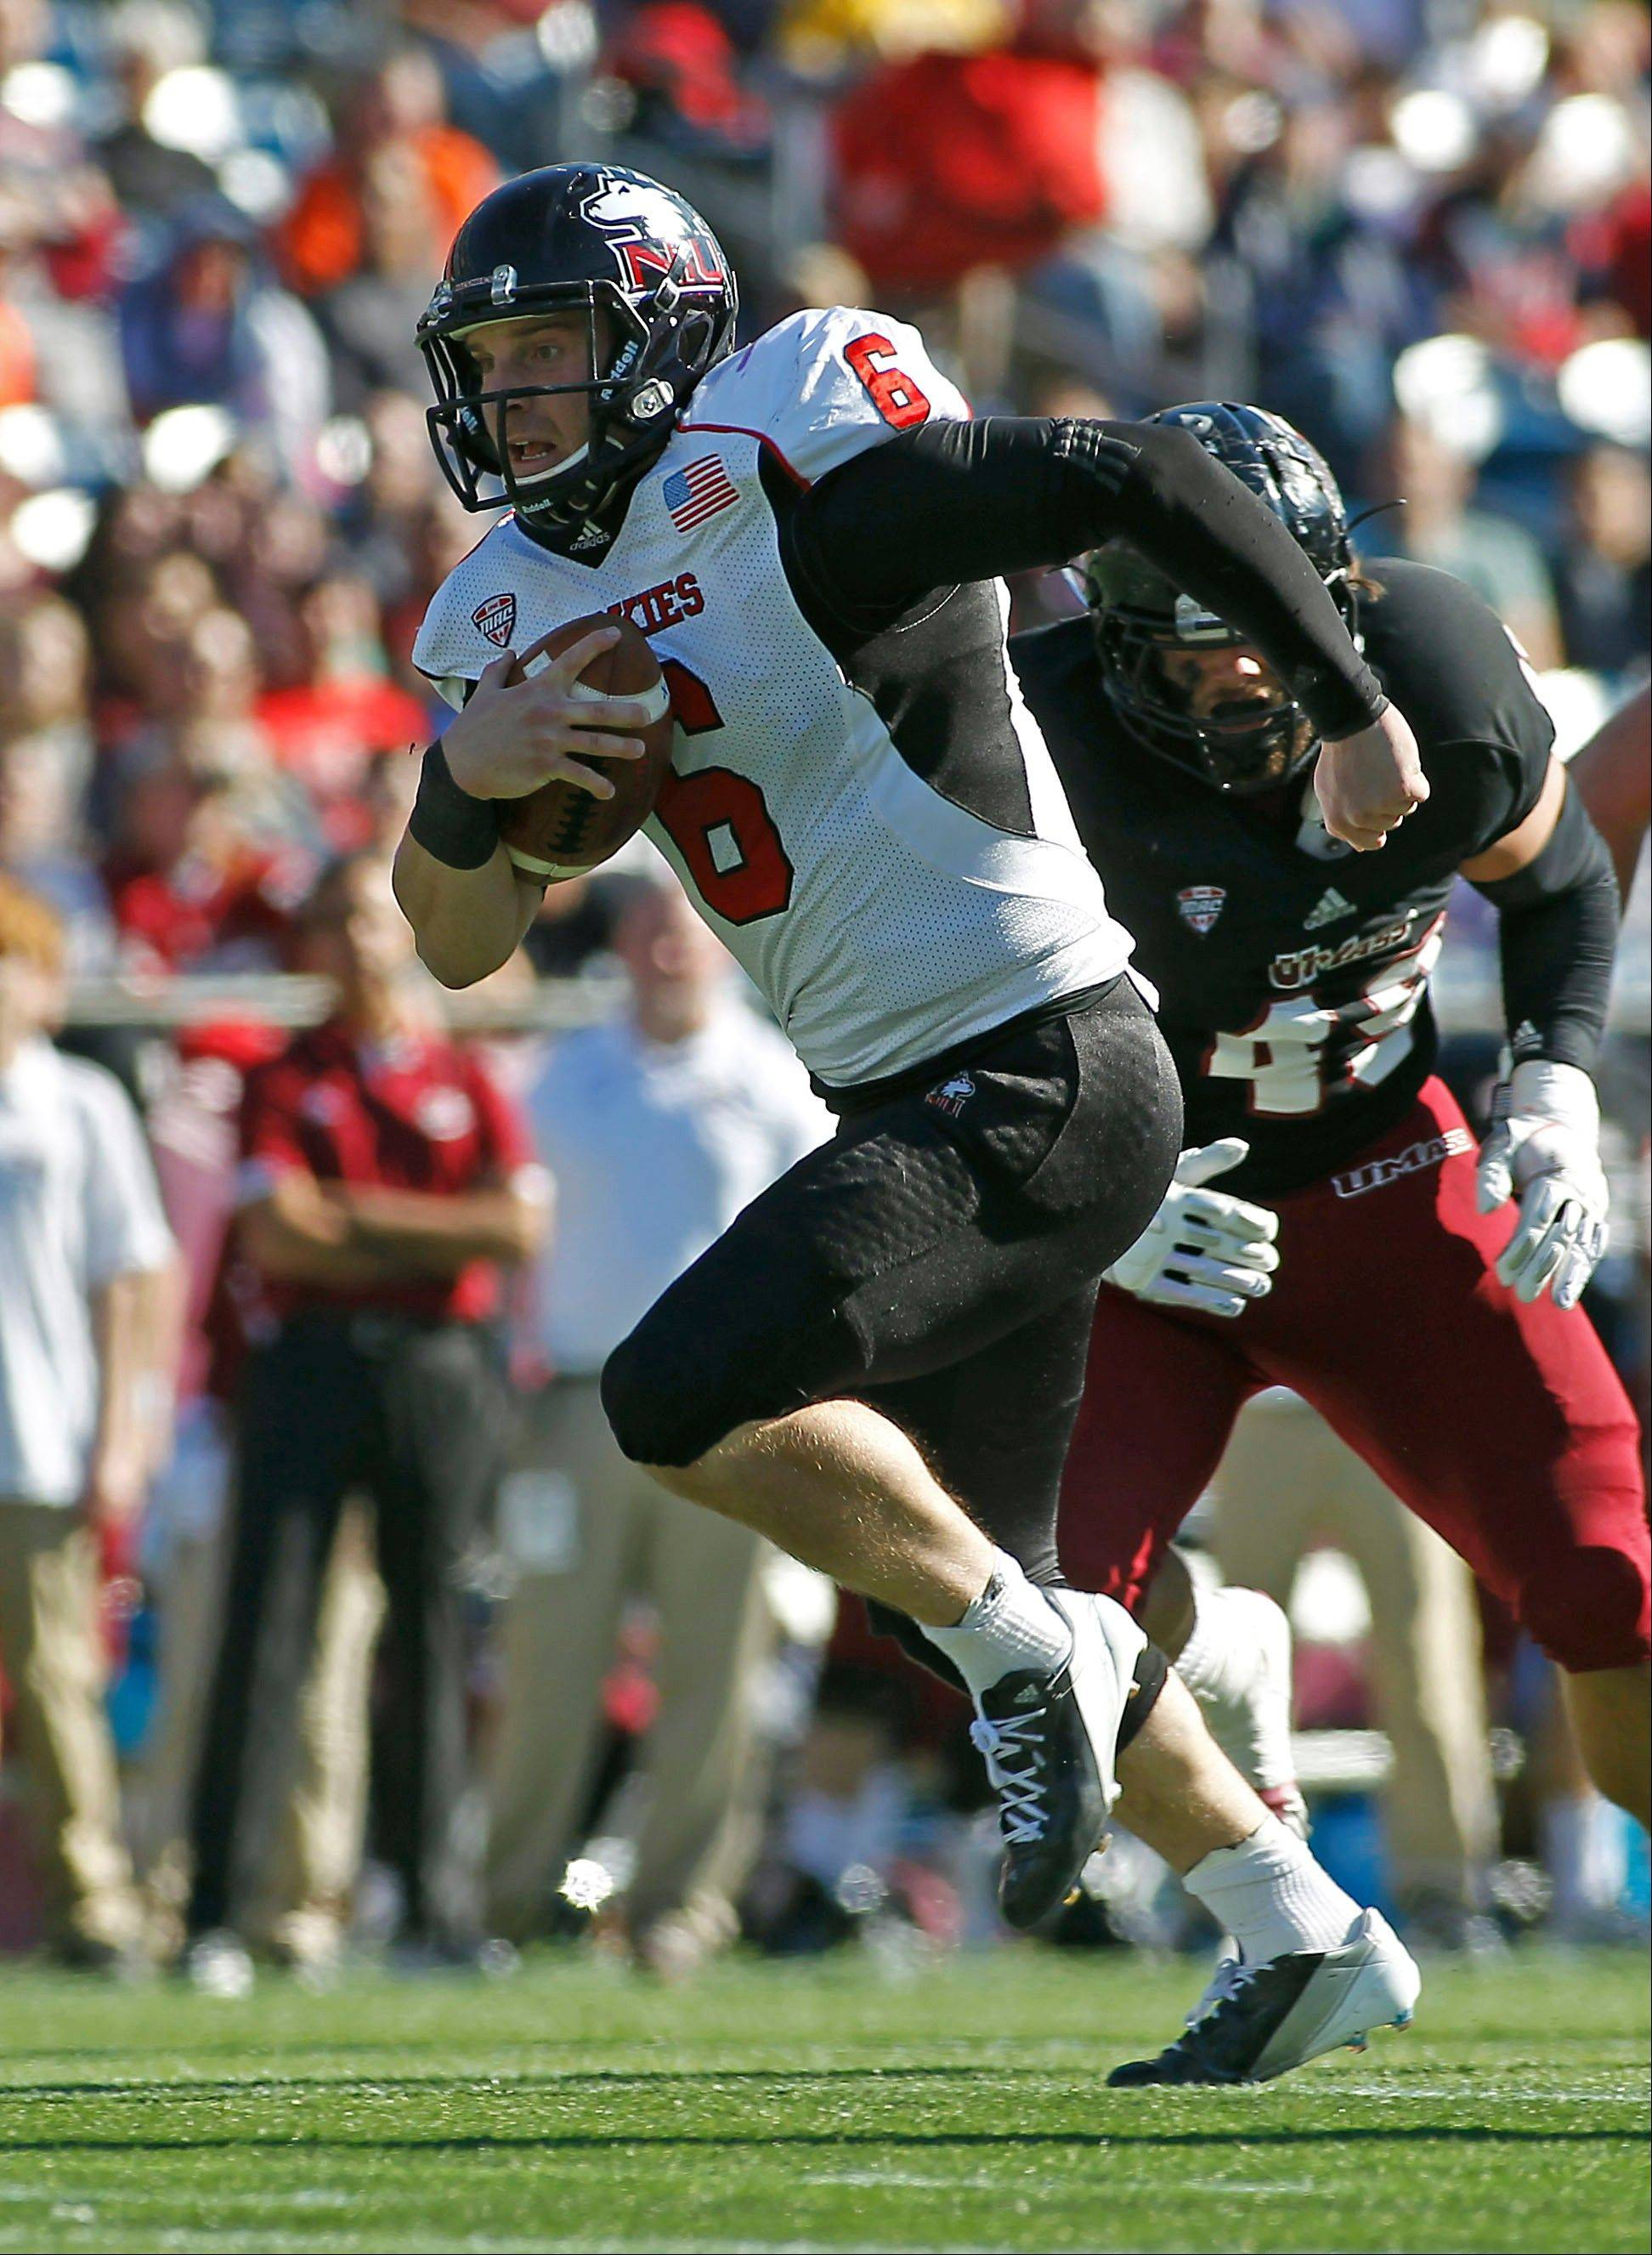 Quarterback Jordan Lynch and the Northern Illinois Huskies are not about to look past Wednesday night's big home game against Ball State.